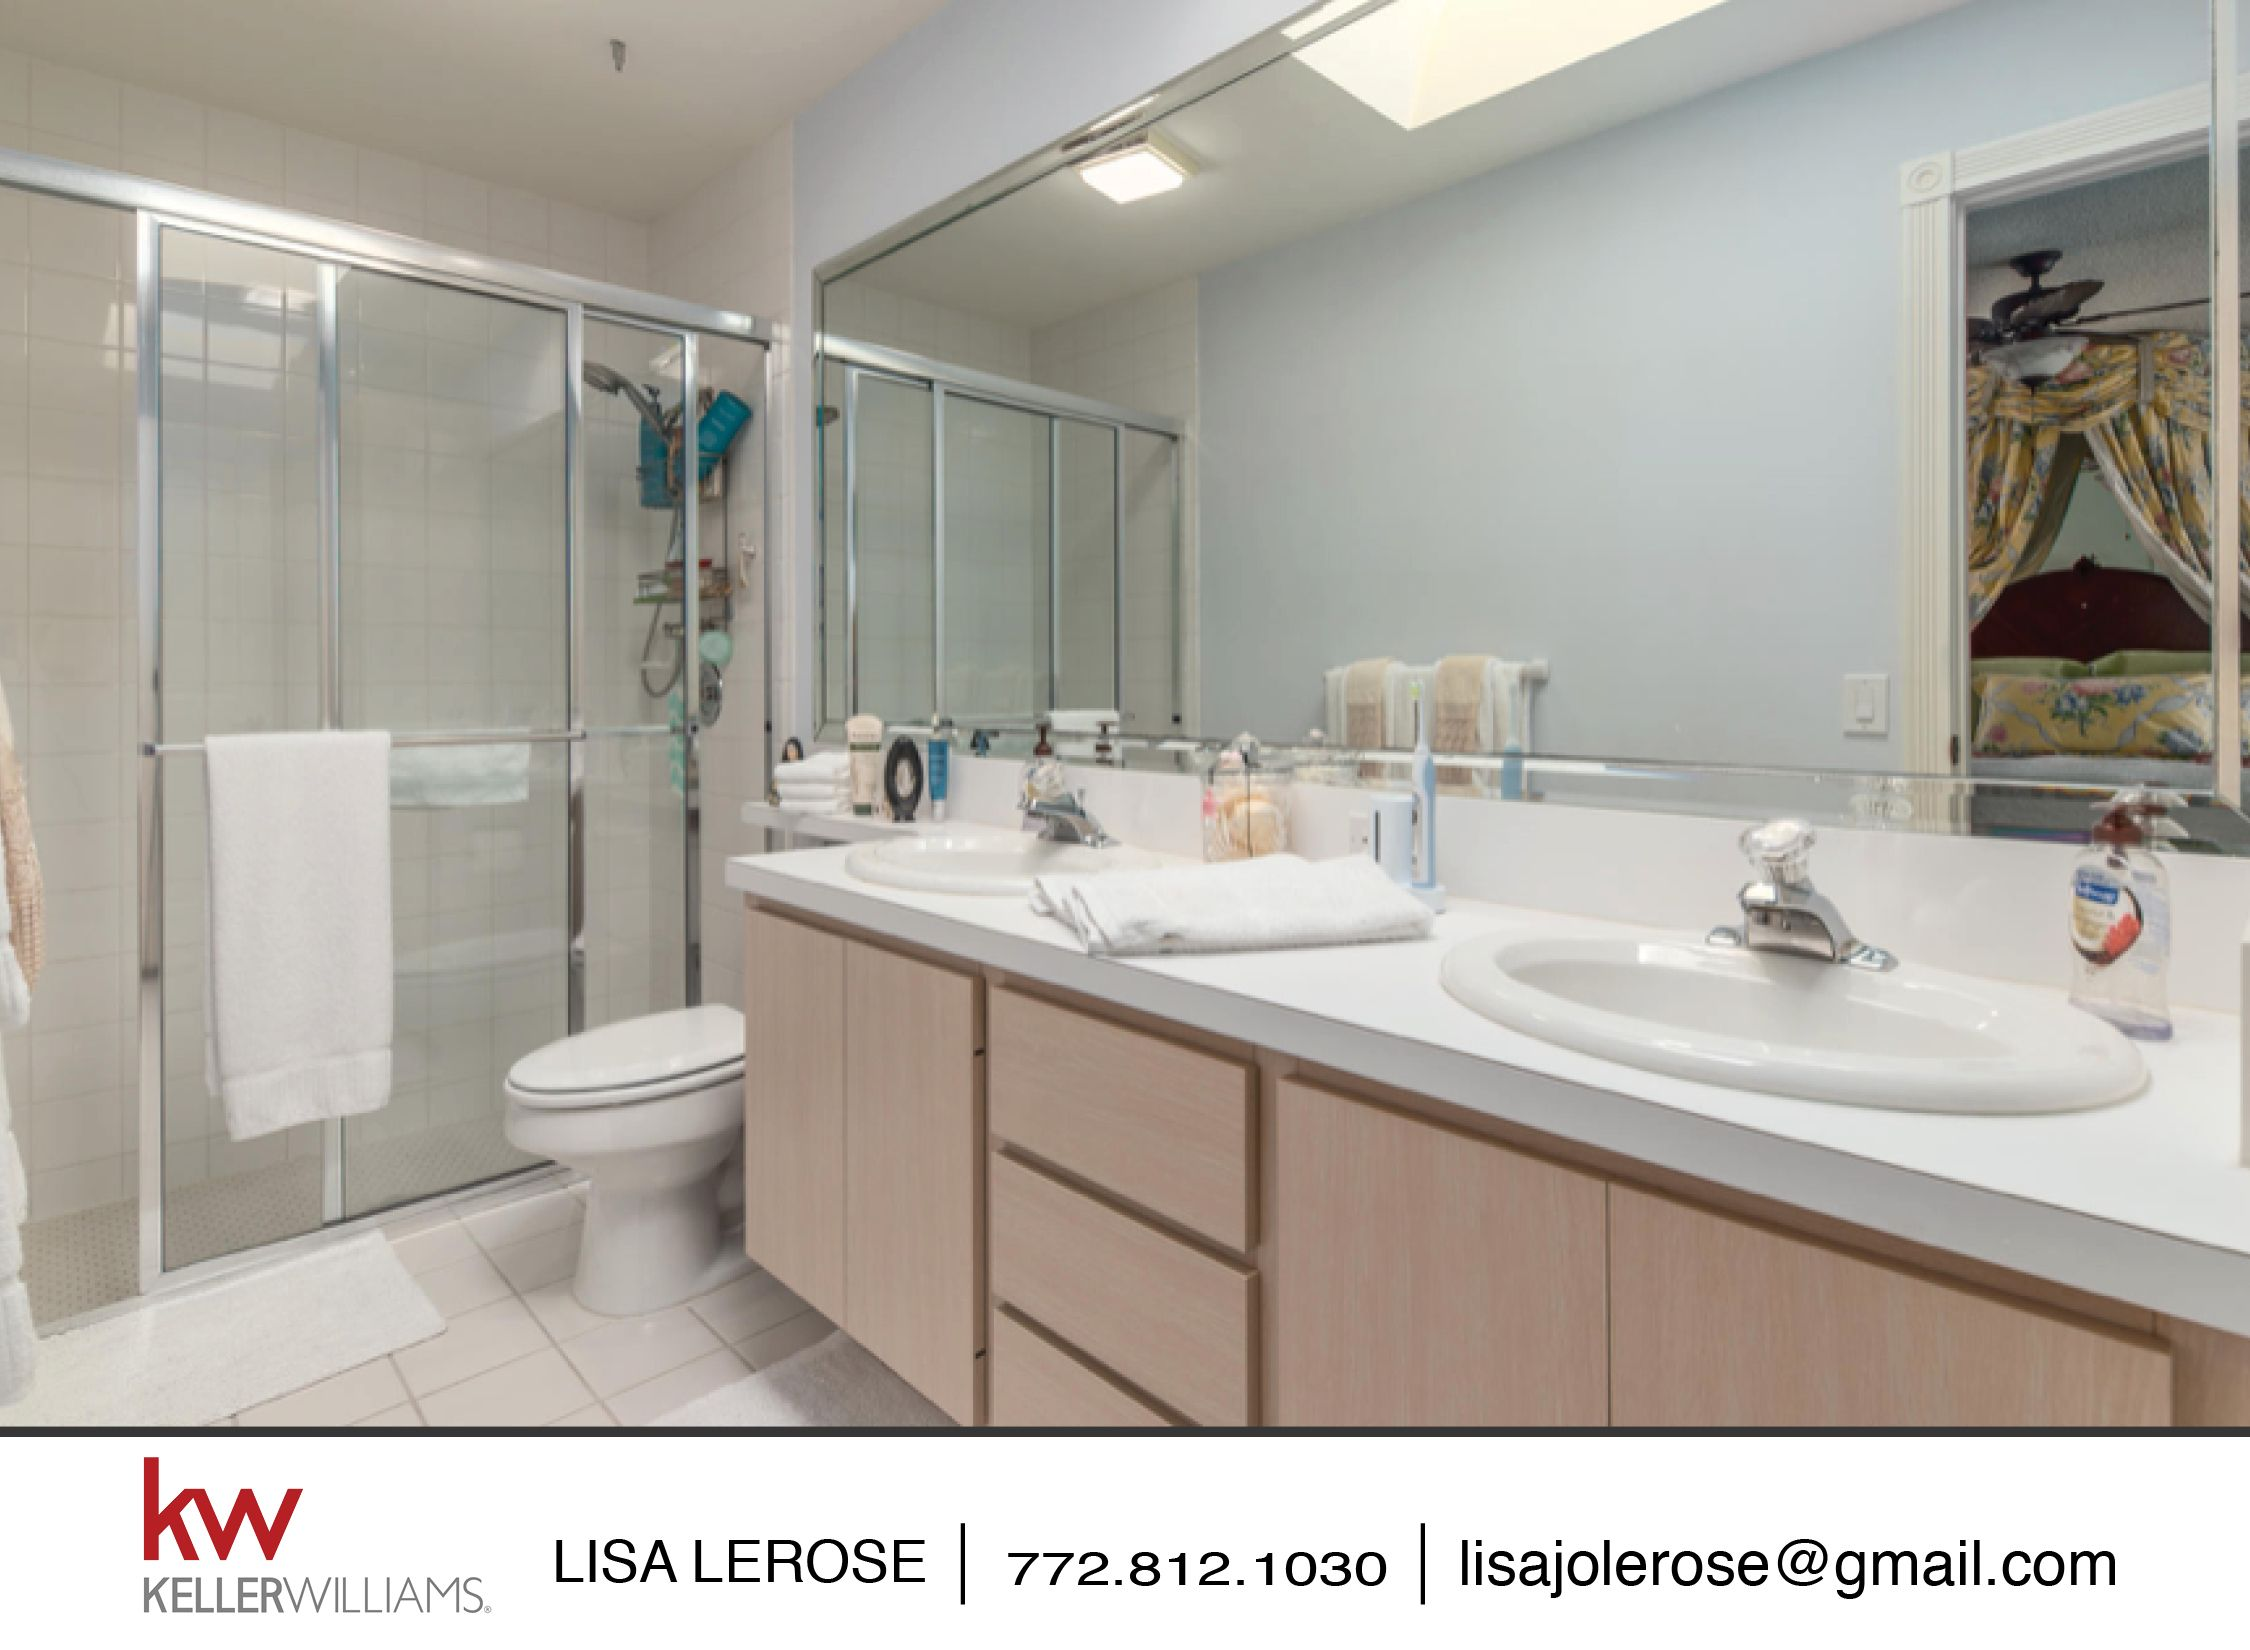 This Beautiful 2 Bedroom 2 Bathroom Ready To Move In Cbs